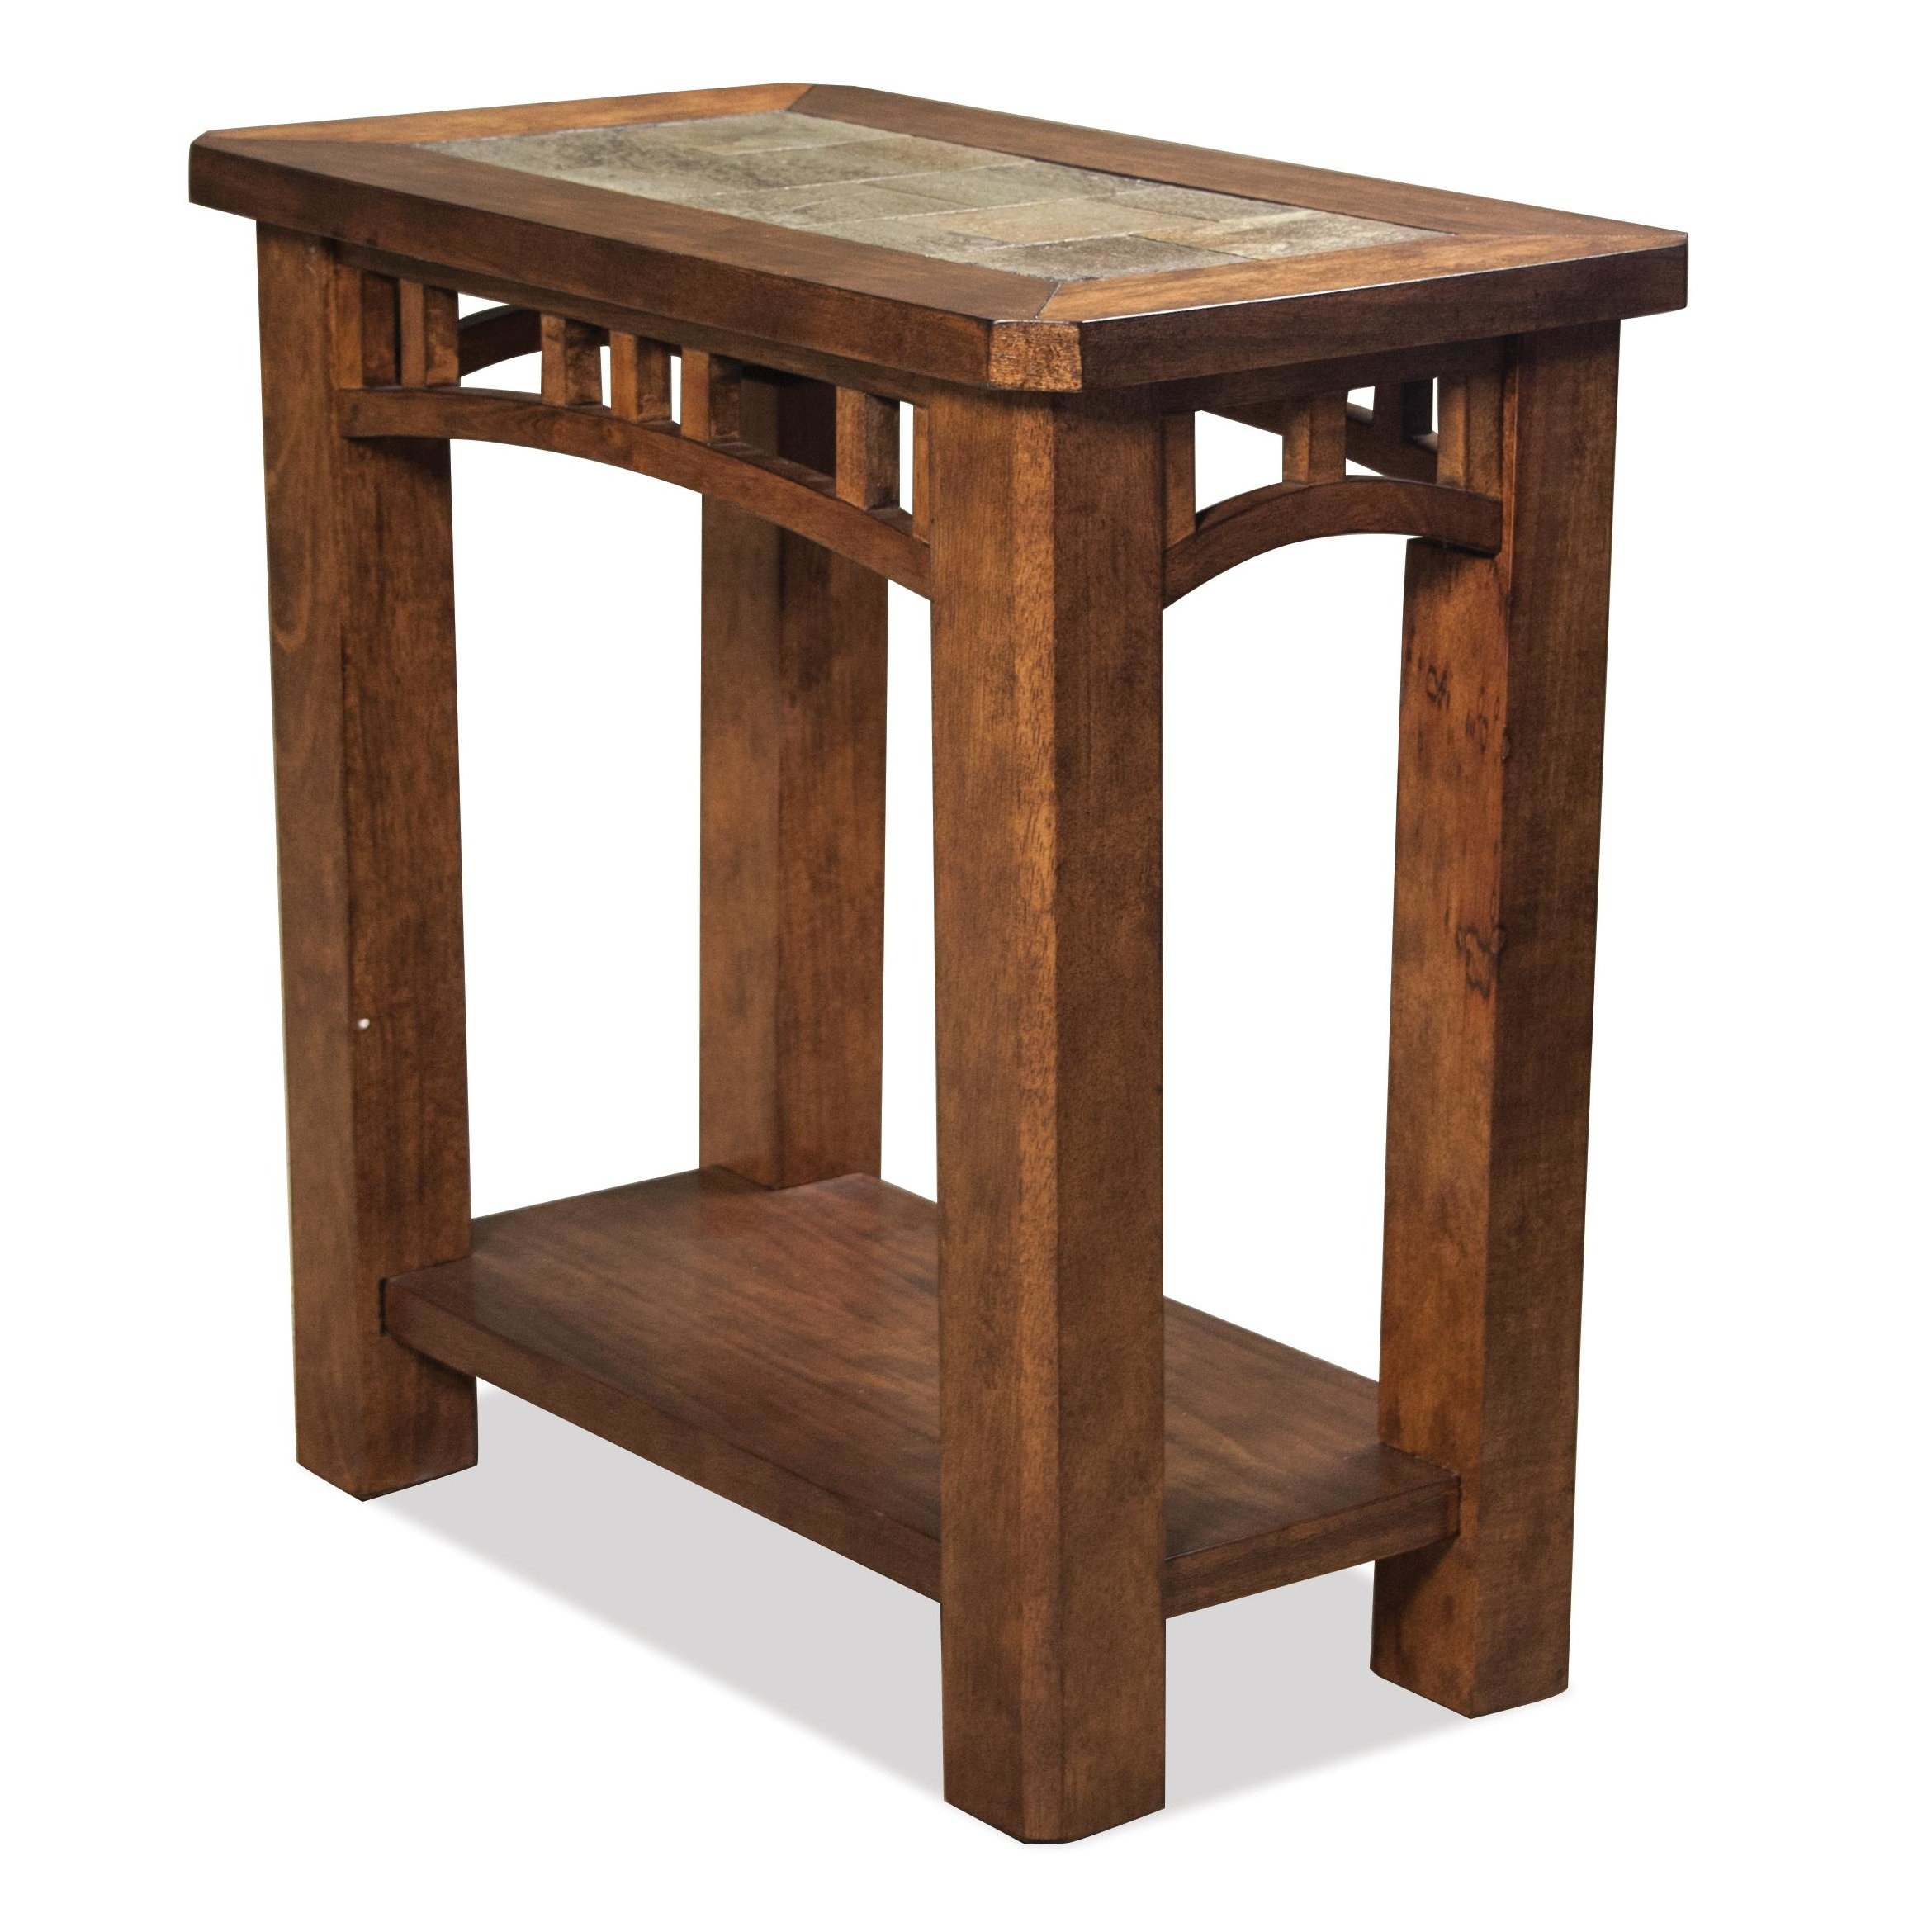 Stone End & Side Tables You'll Love | Wayfair Intended For Layered Wood Small Square Console Tables (View 16 of 30)